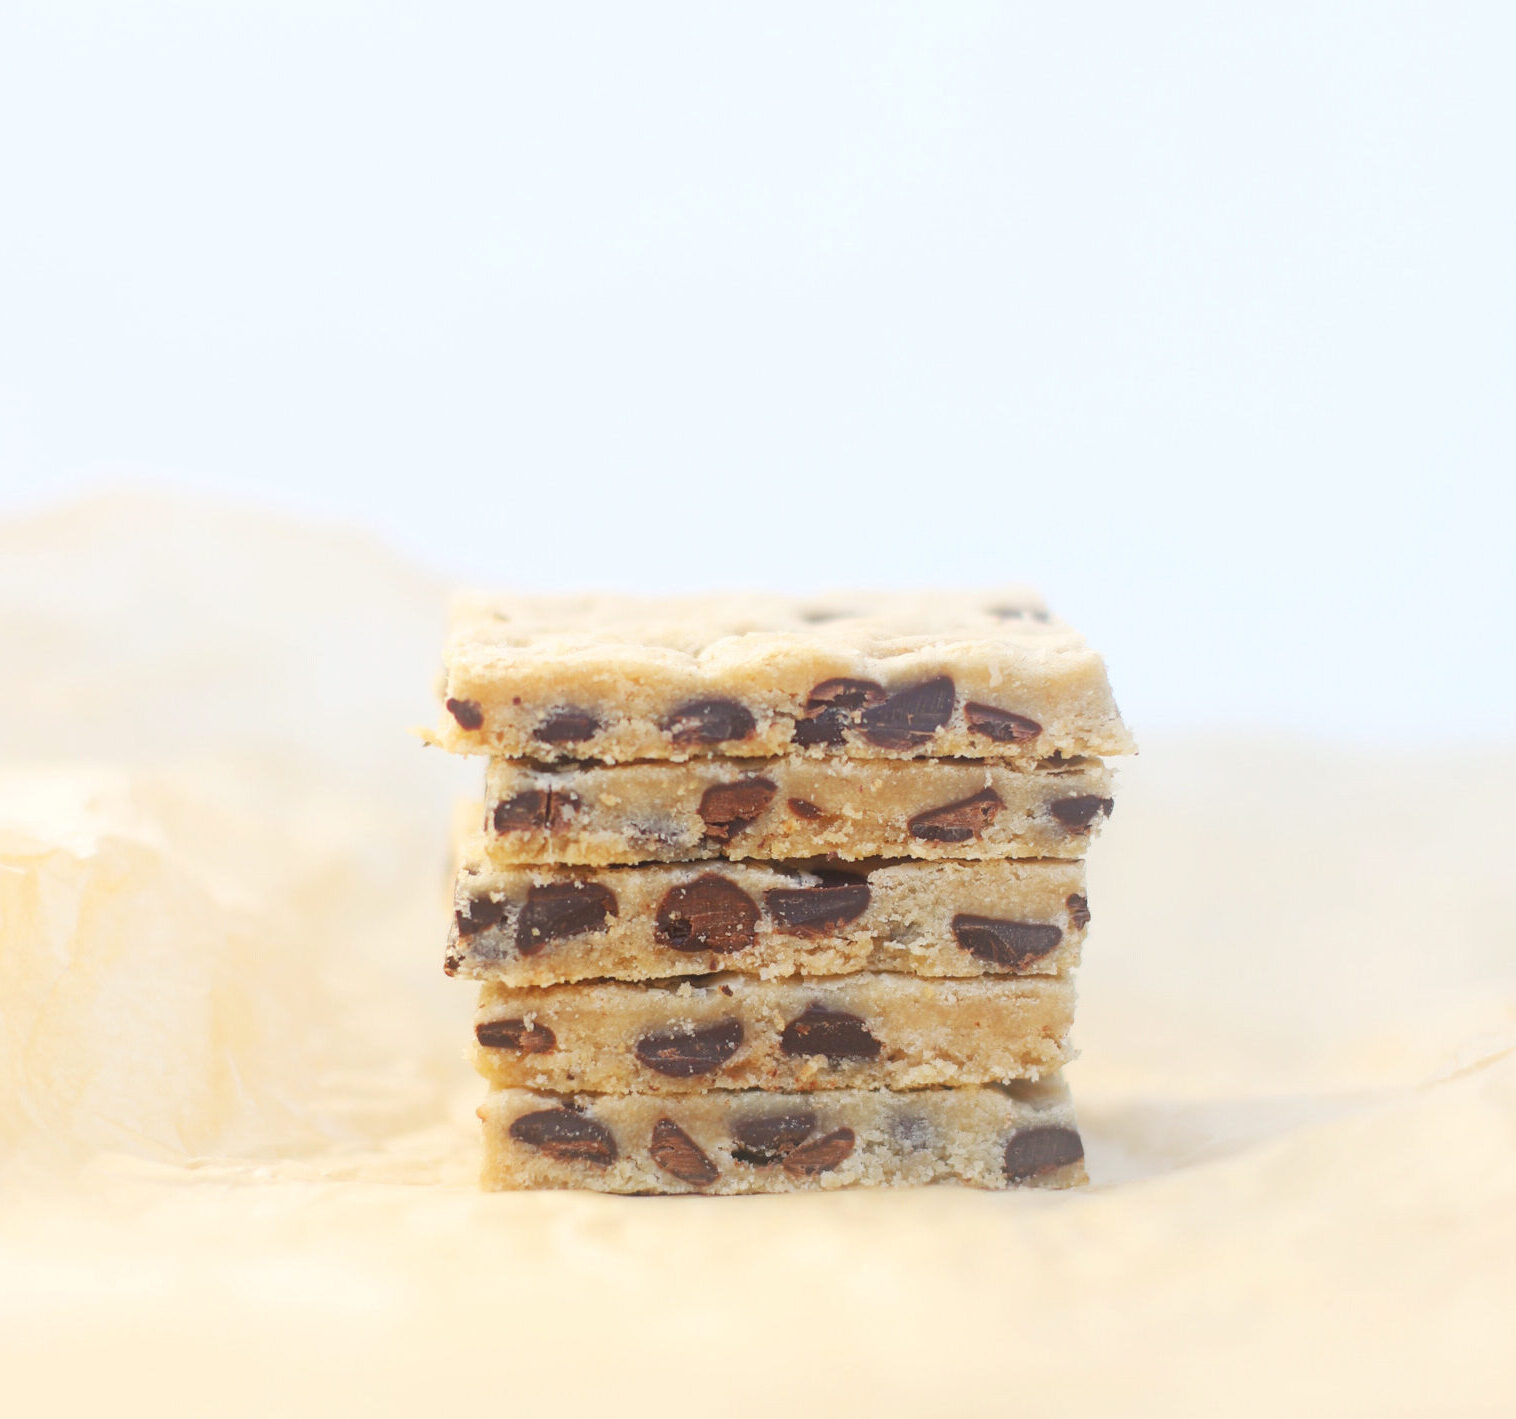 Just as decadently yummy as a classic cookie, cookie bars are simple to make and come together in a fraction of the time. And these vegan chocolate chip cookie bars in particular are moist, chewy, and a total crowd-pleaser! #recipe #cookiebars #vegancookies #vegan #dairyfree   glitterinc.com   @glitterinc